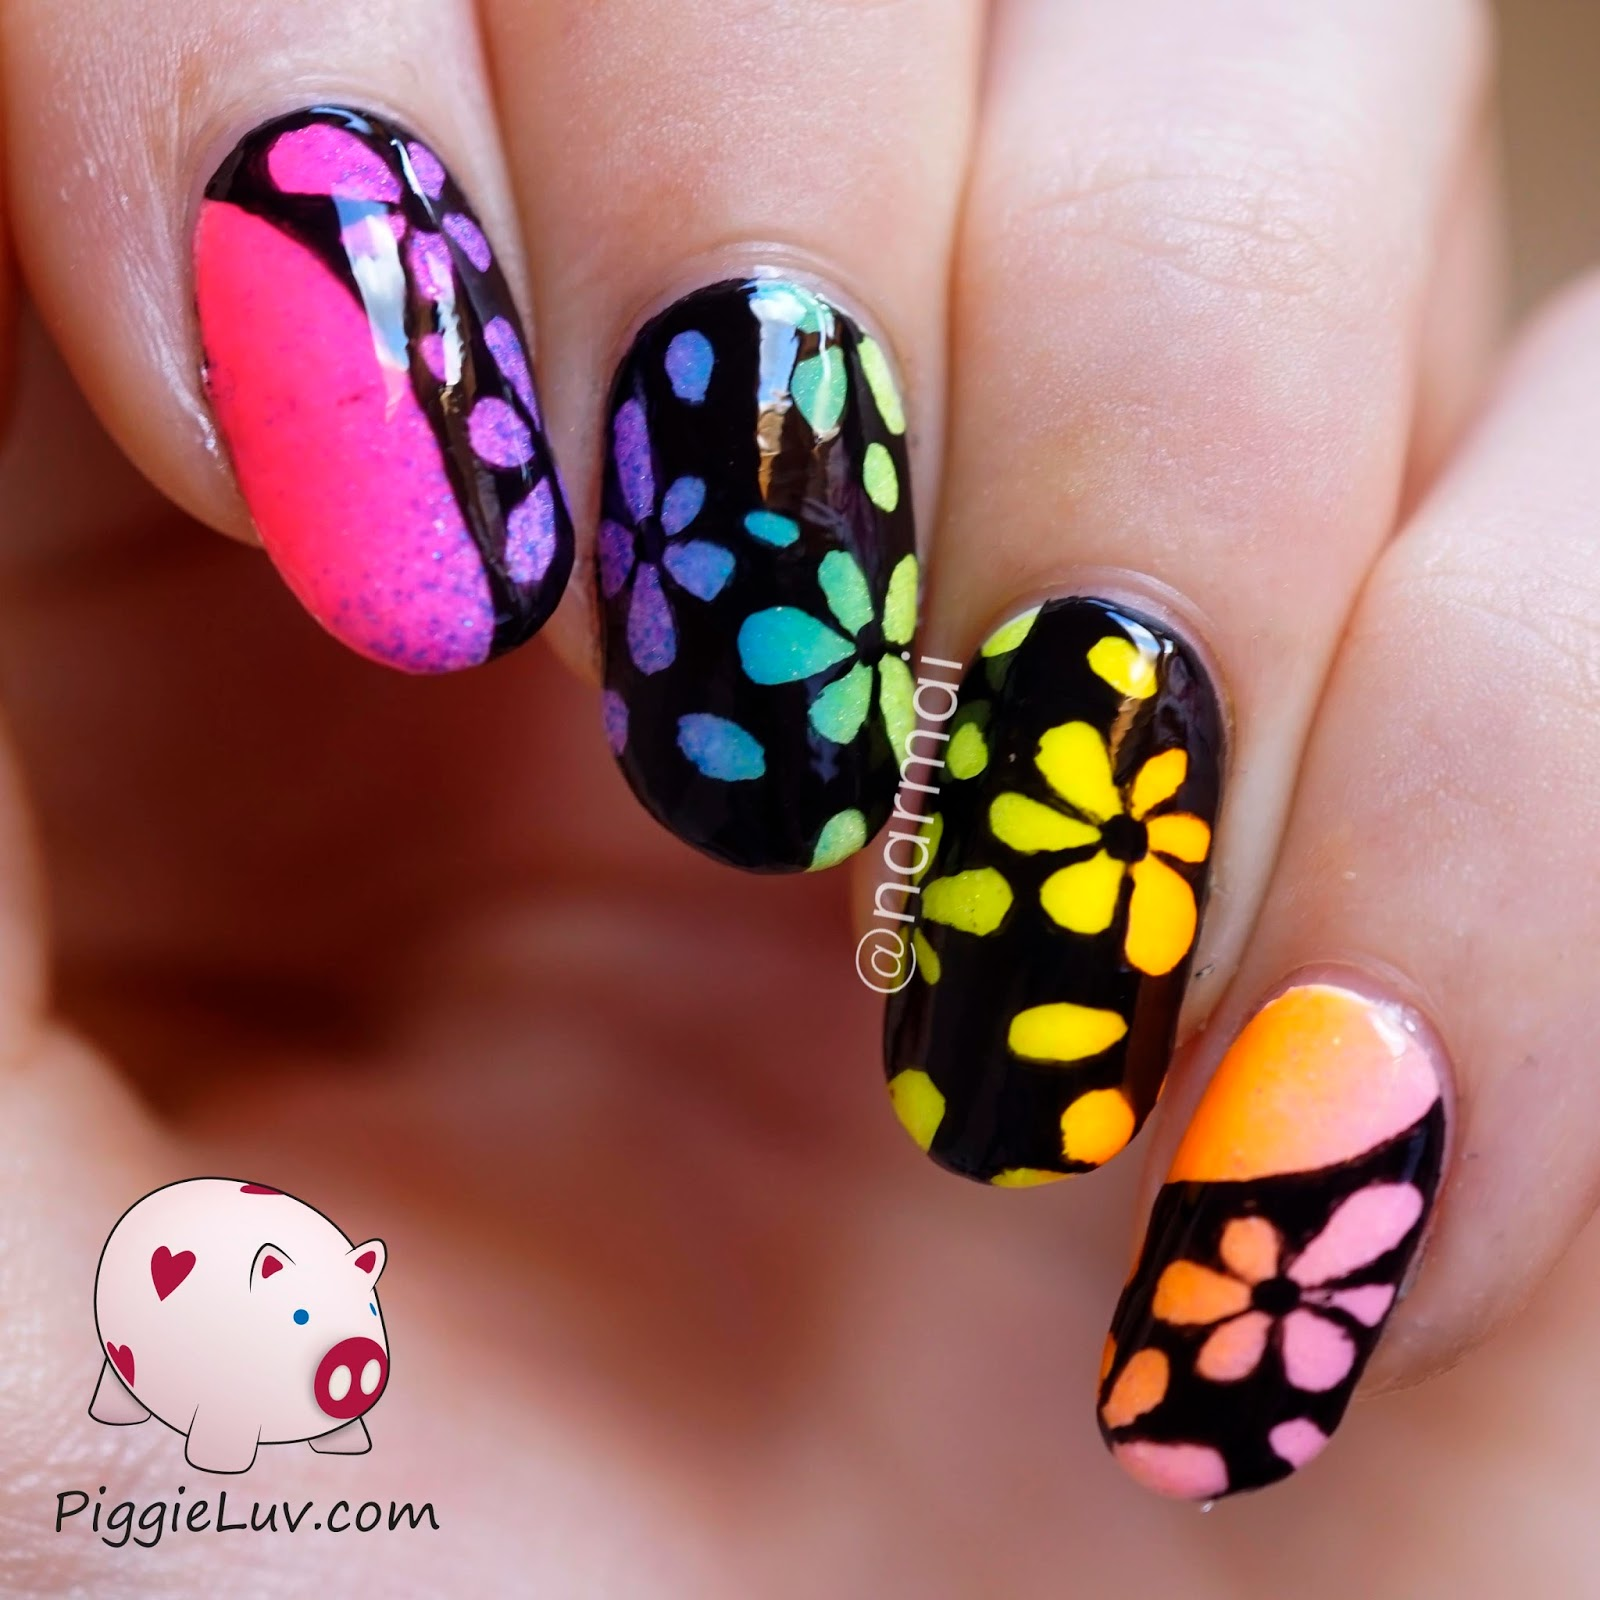 I Love Glow In The Dark Nail Art Ofcourse Have A Video Tutorial For You As Well So Click To See More